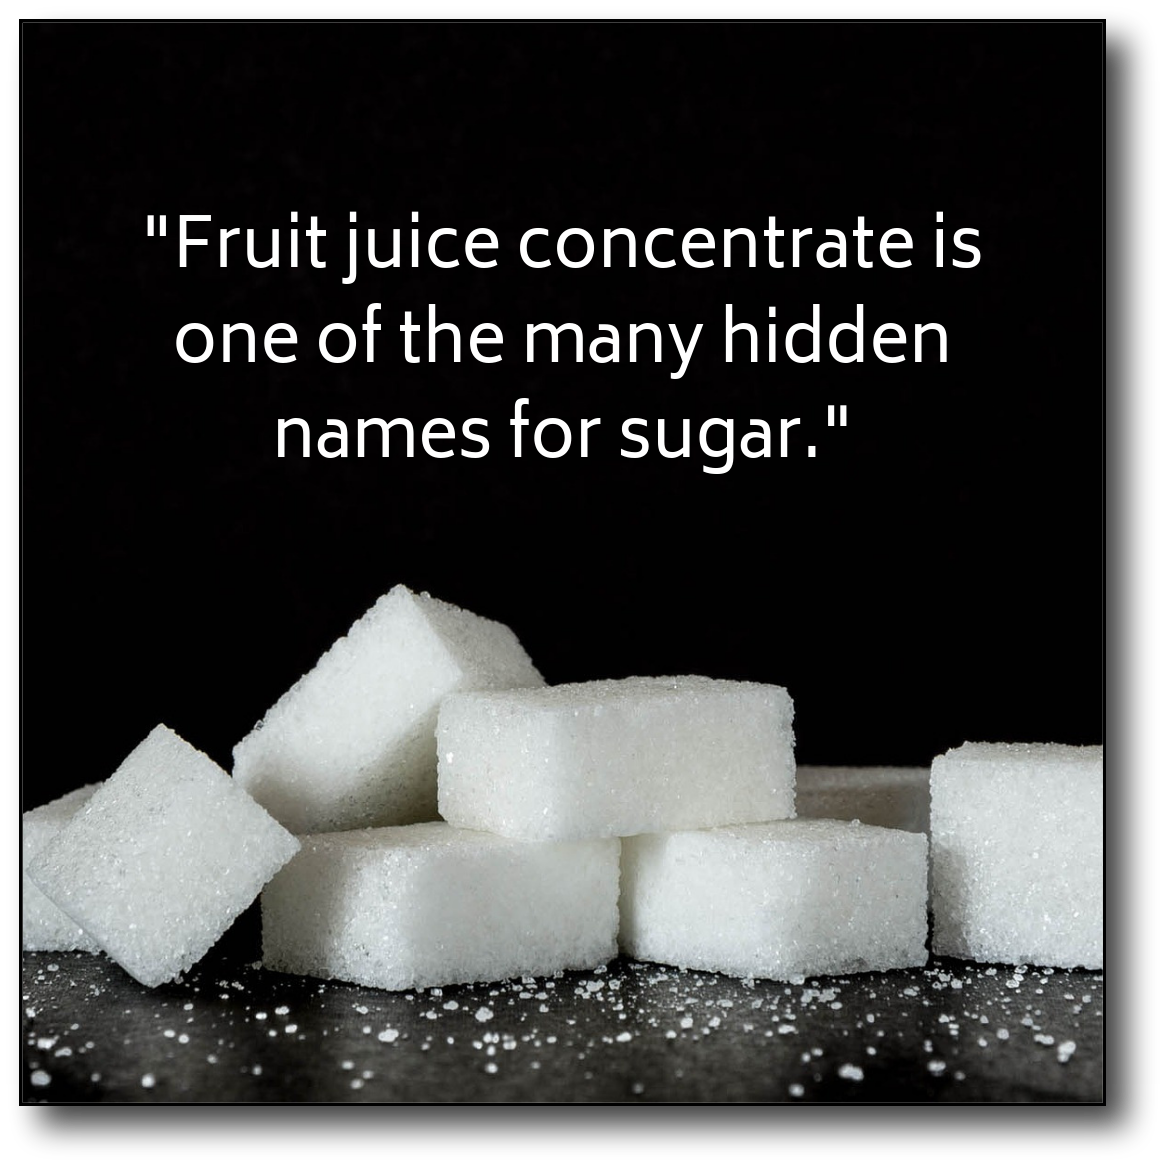 Fruit juice concentrate - hidden name graphic